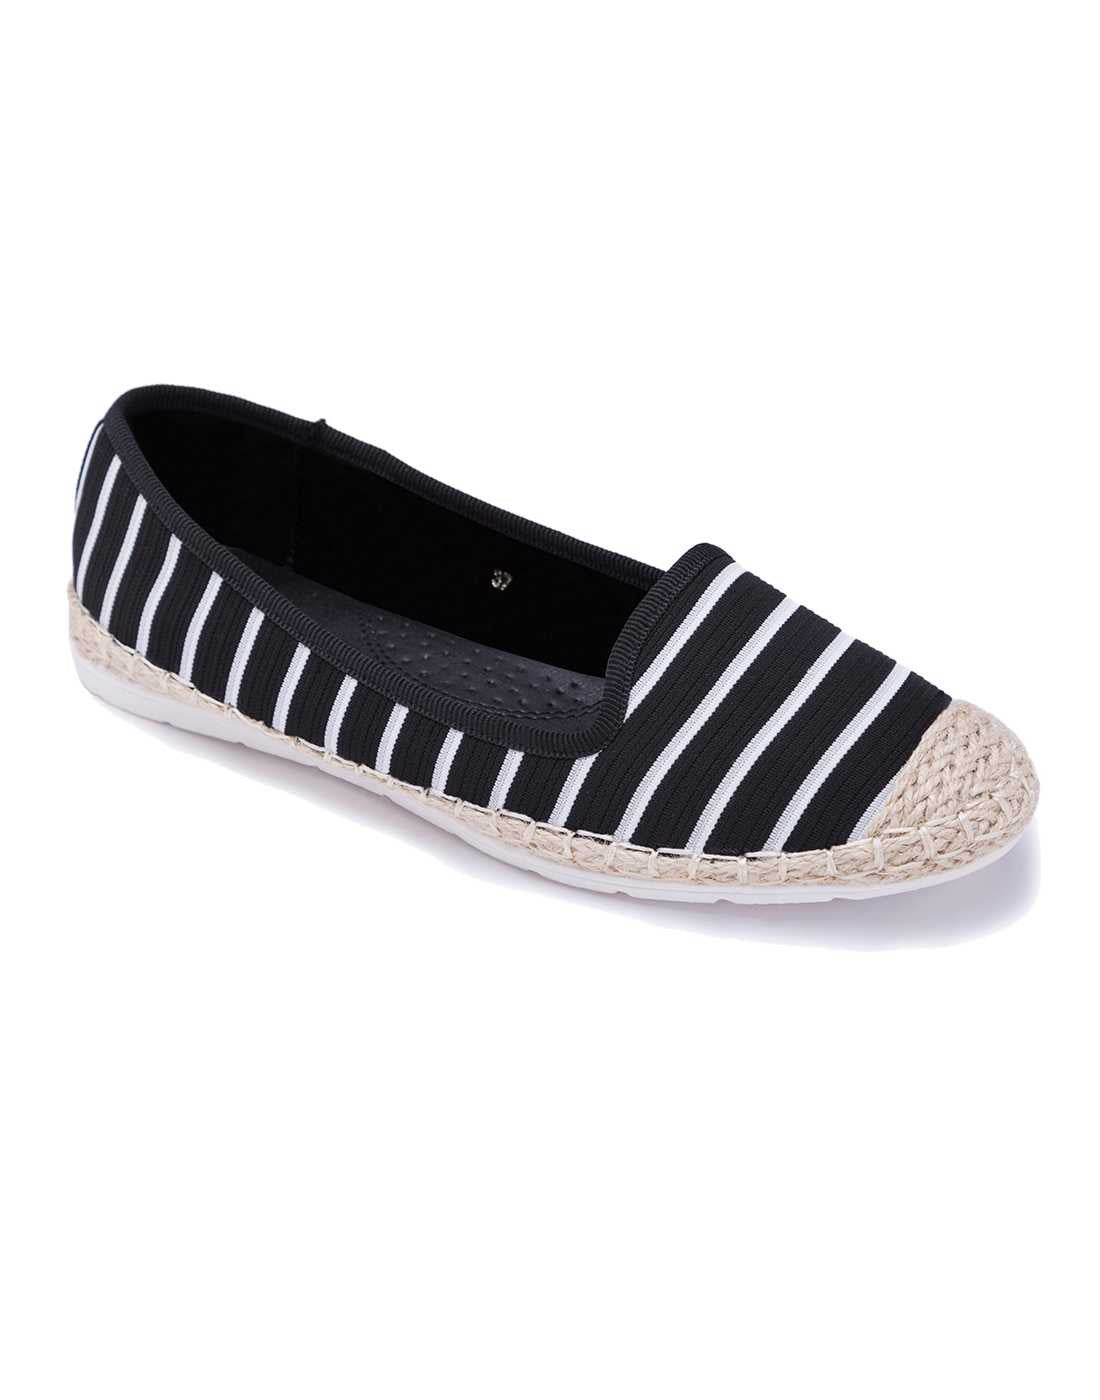 Black and White Striped Espadrilles